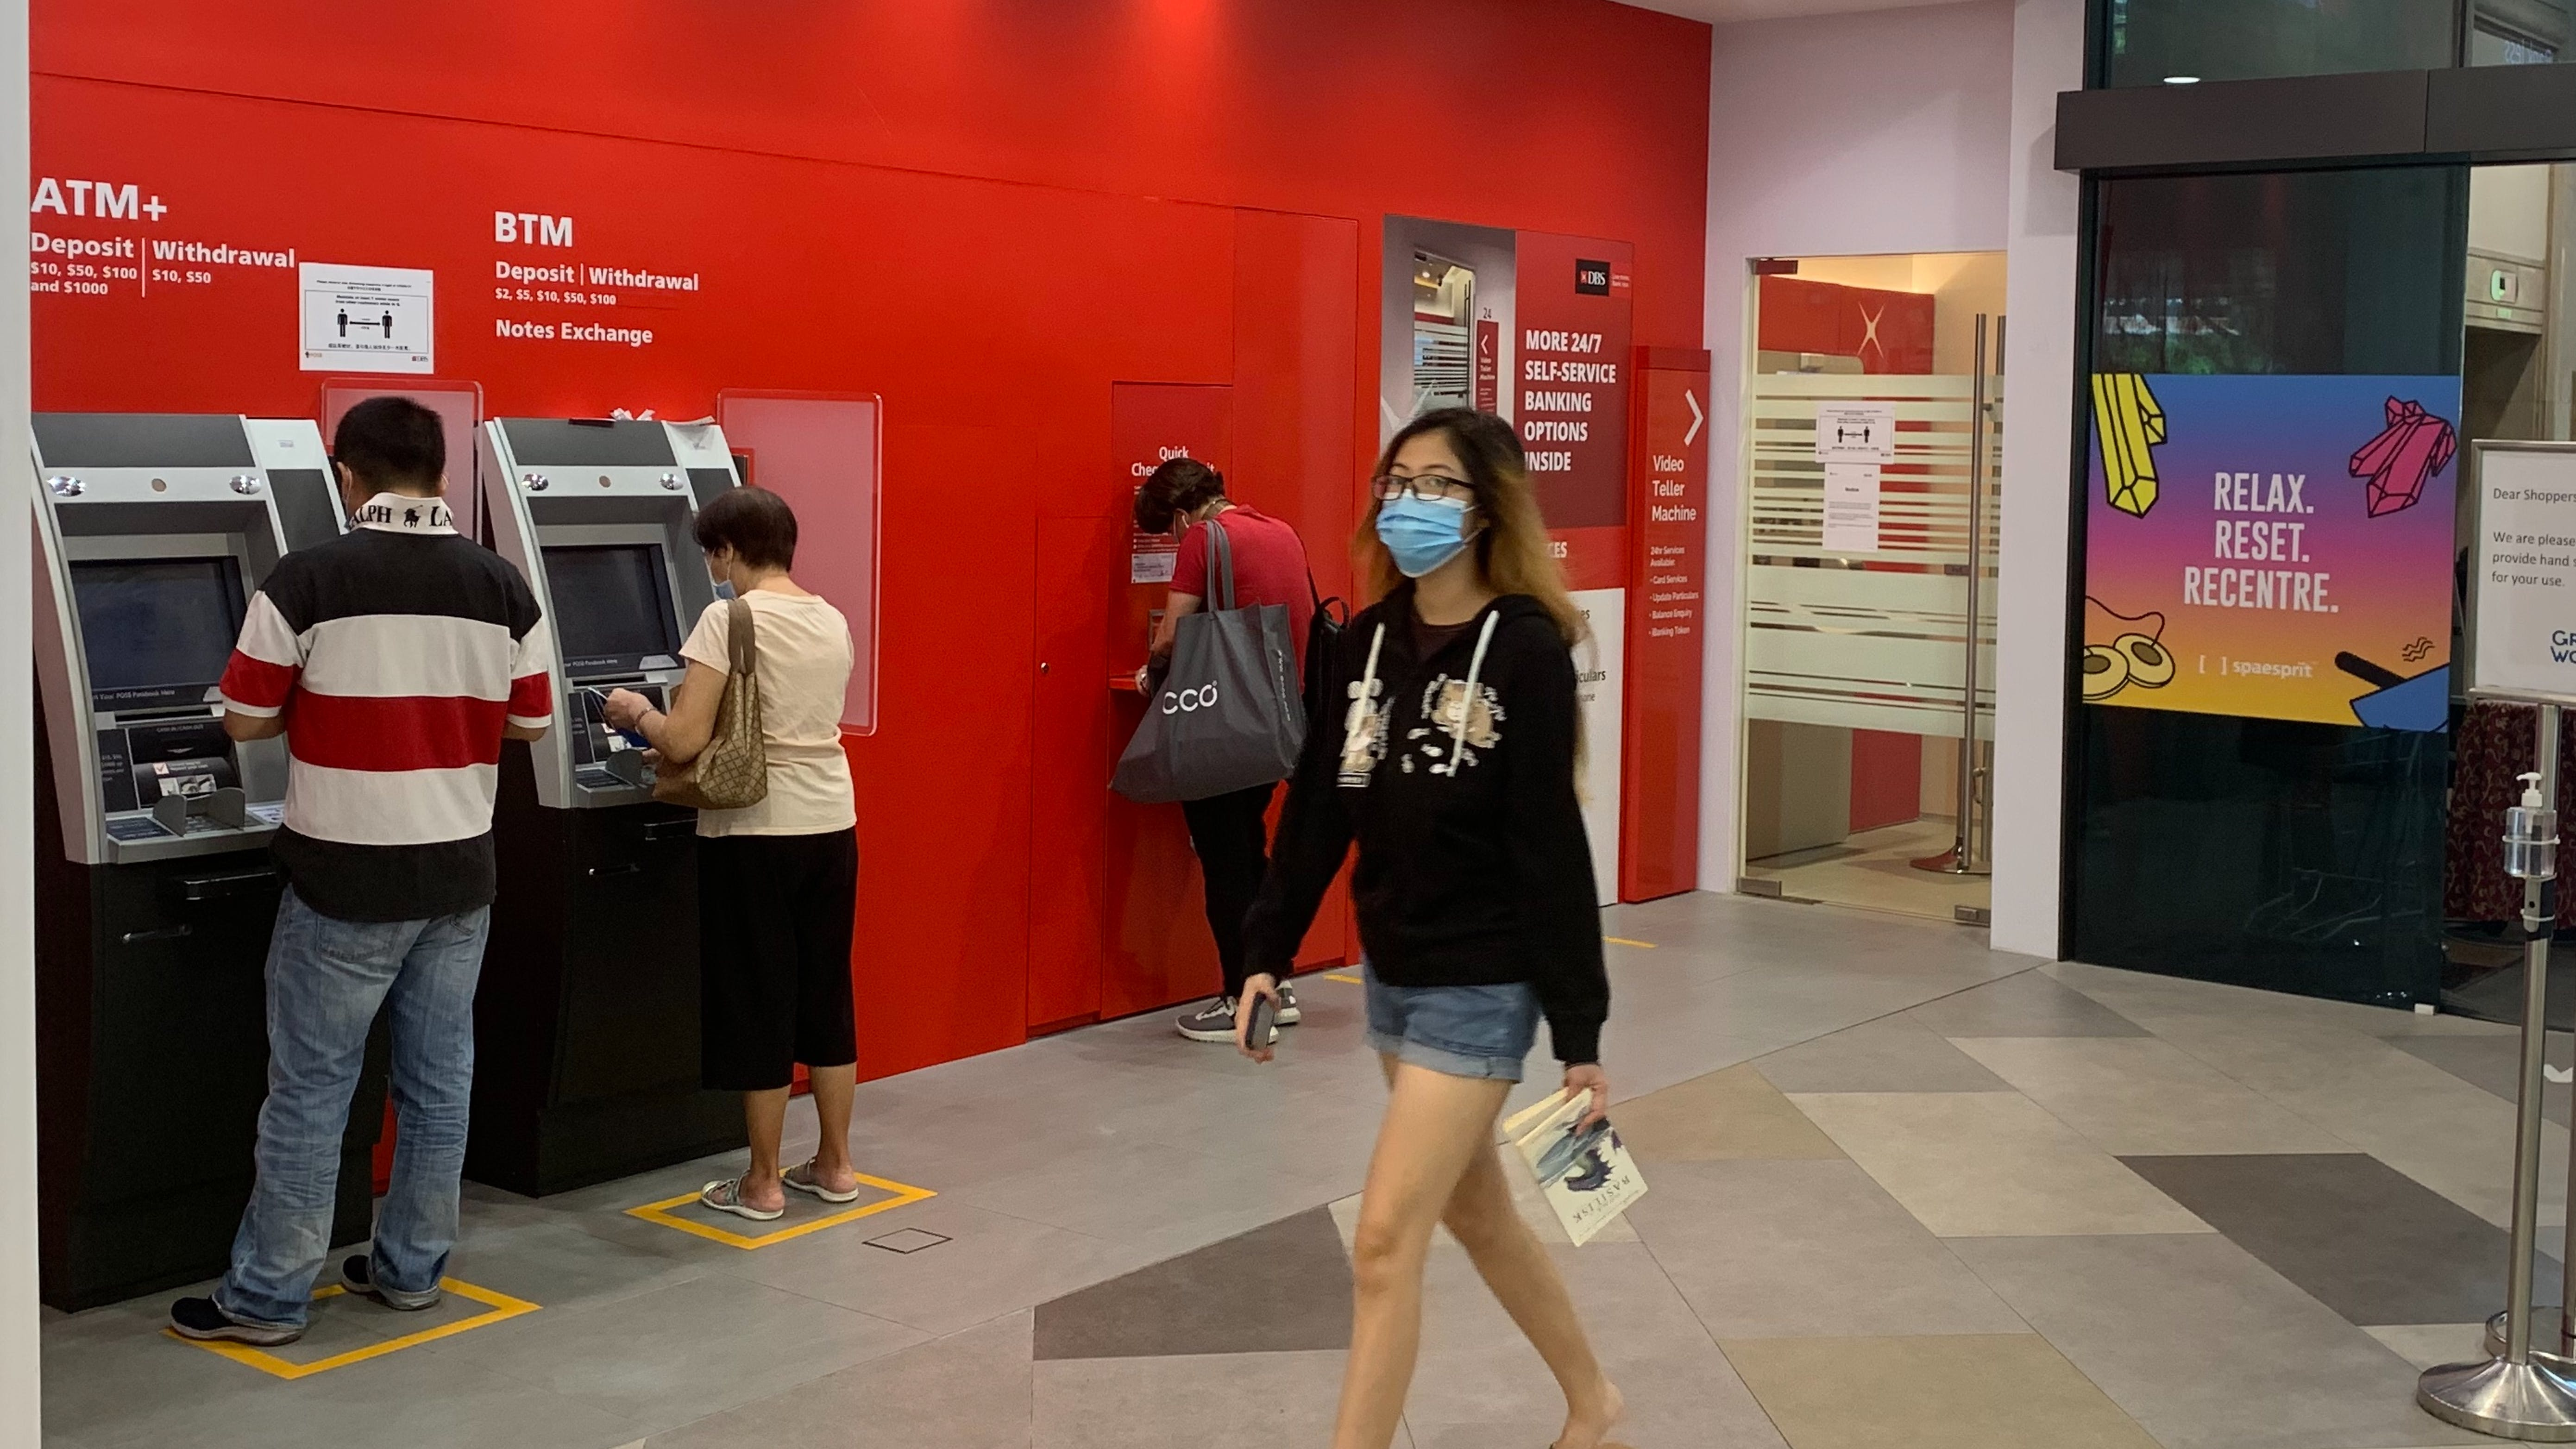 People using ATM machines in Singapore. Image: Robin Hicks/Eco-Business